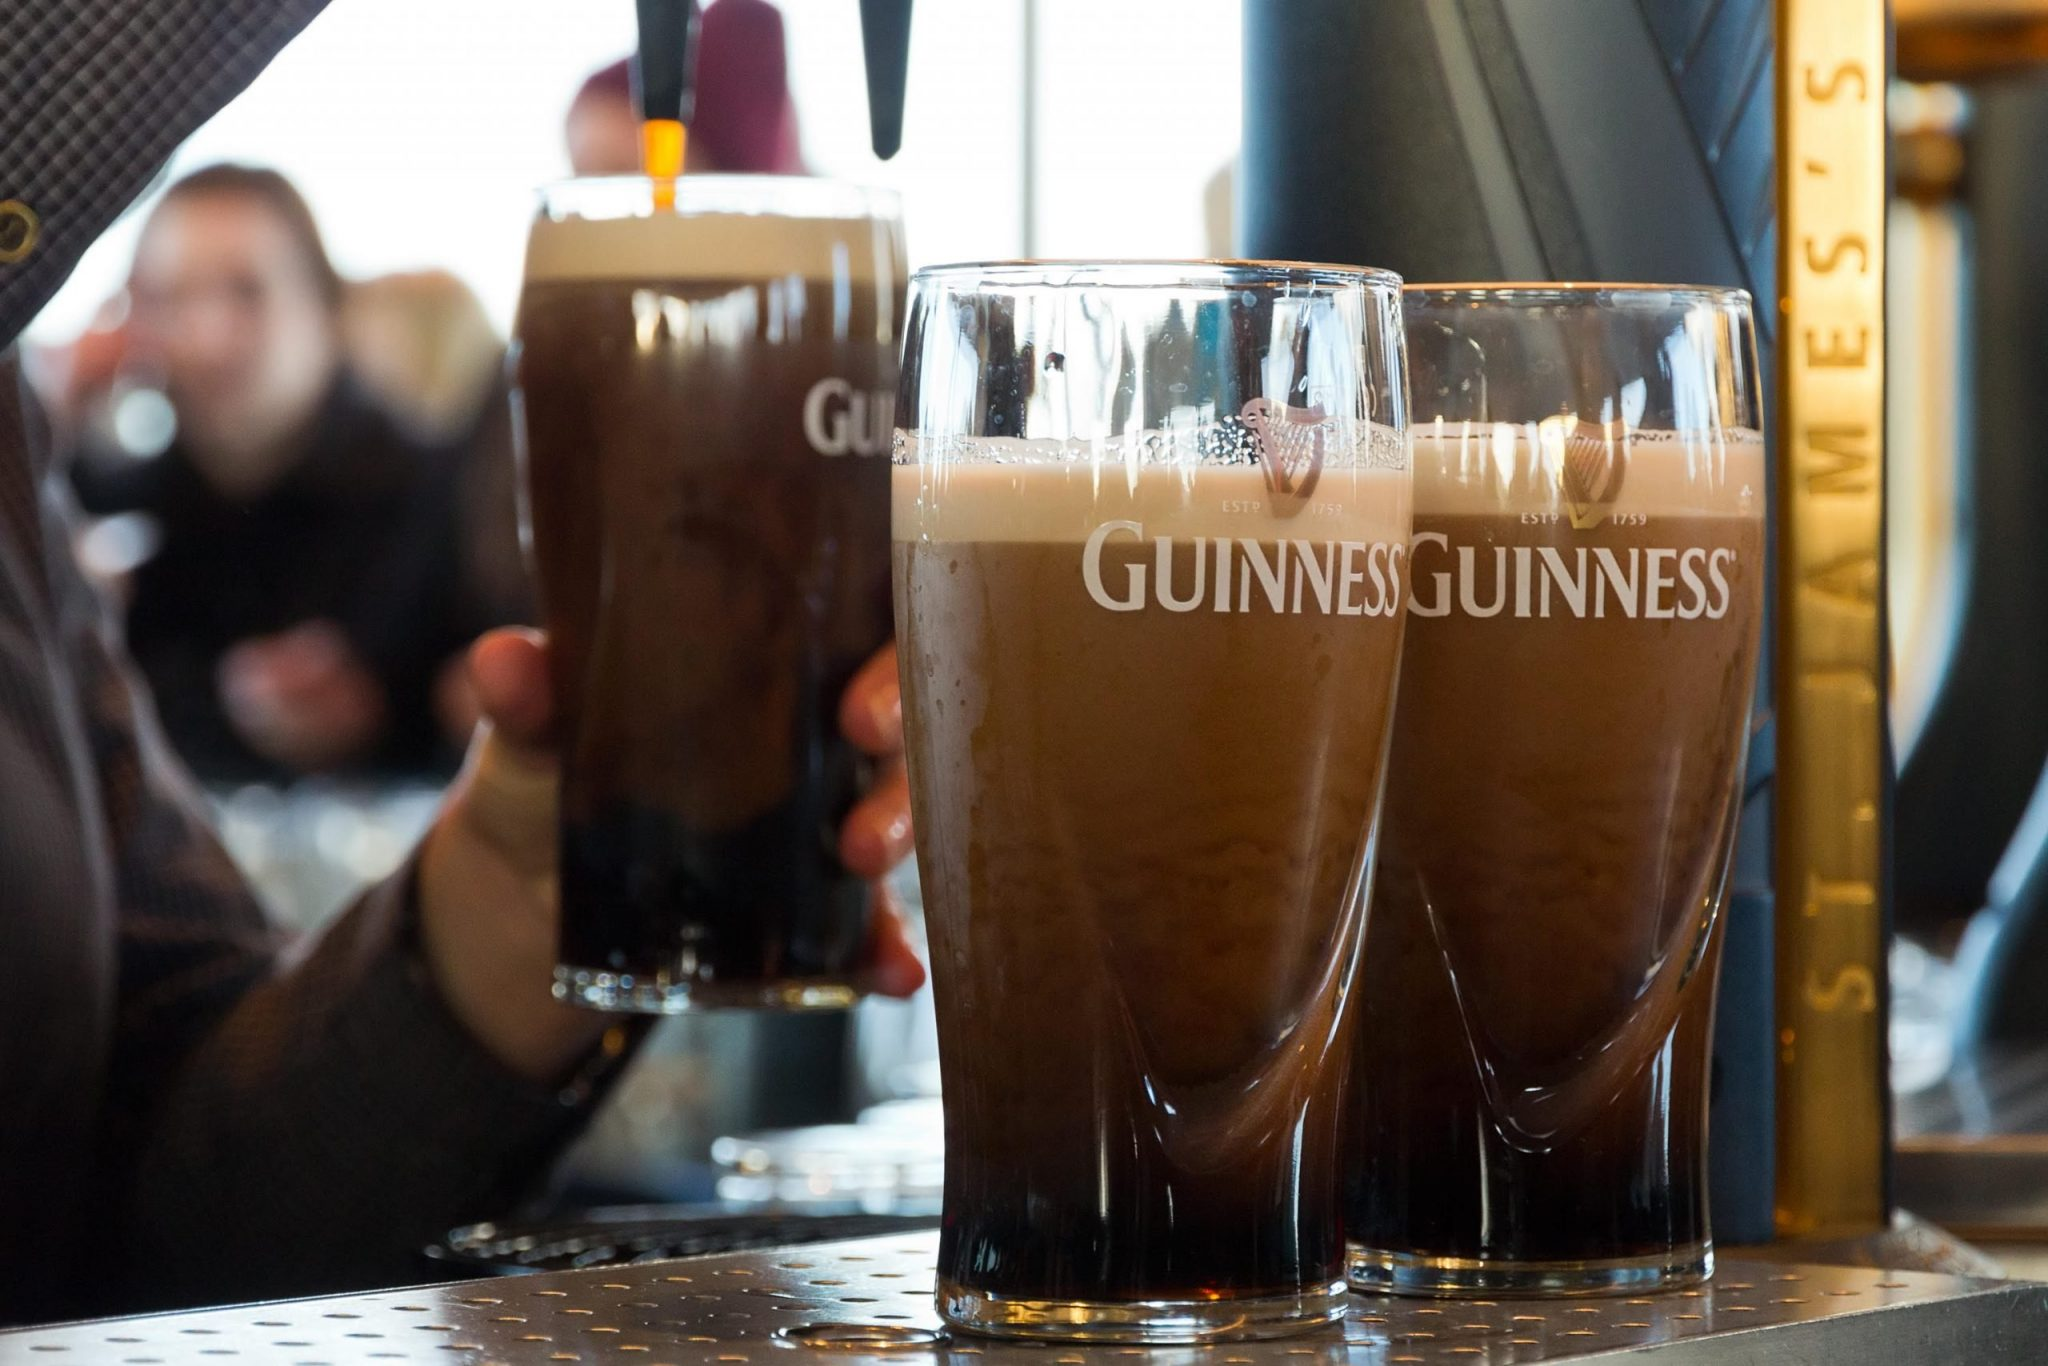 Try a Guinness in one of Ireland's Irish bars